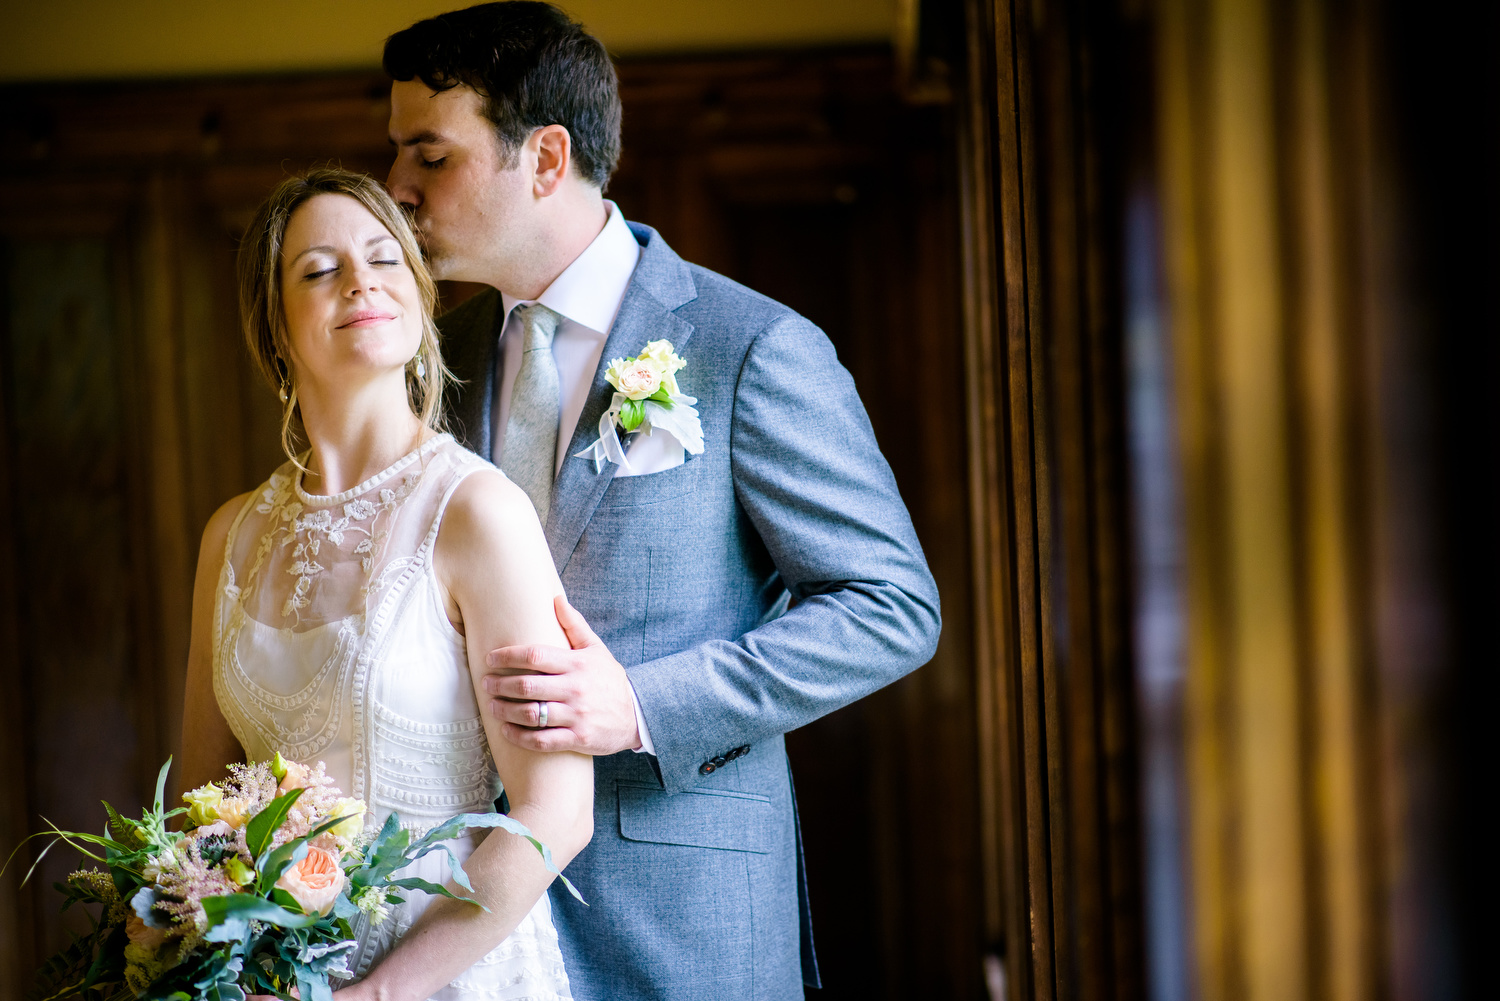 Indoor portrait of the bride and groom during a Cheney Mansion wedding in Oak Park.